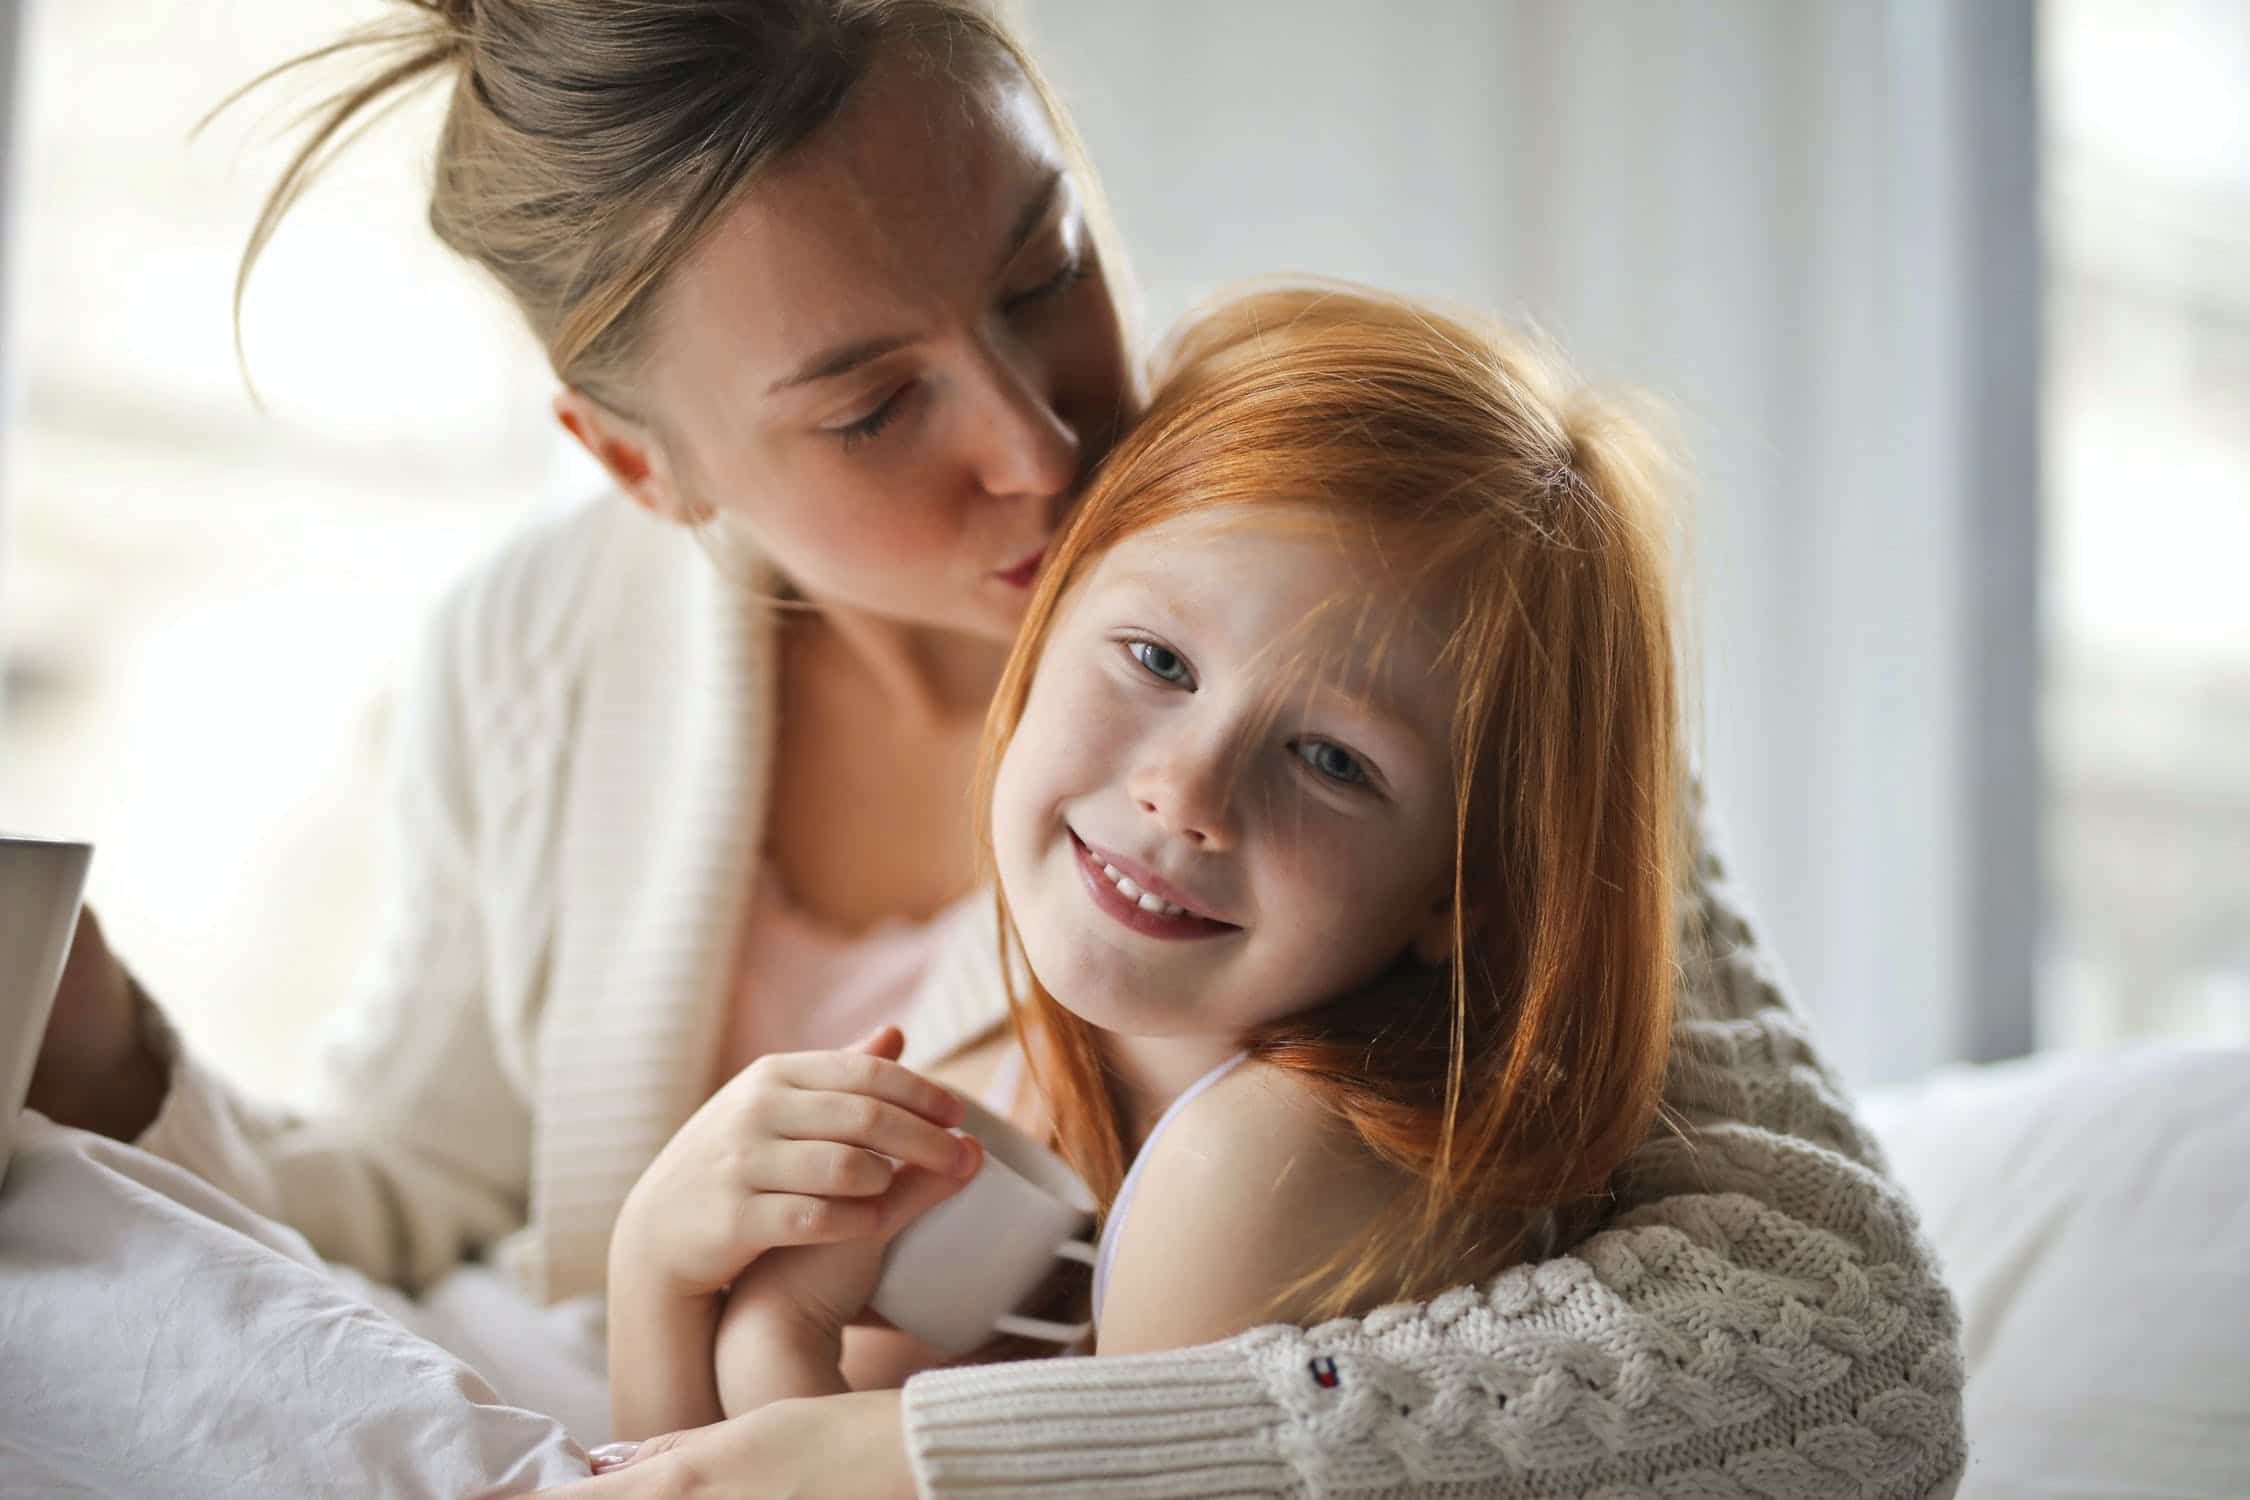 LGBT Lawyers a mother and her daughter before going into child custody